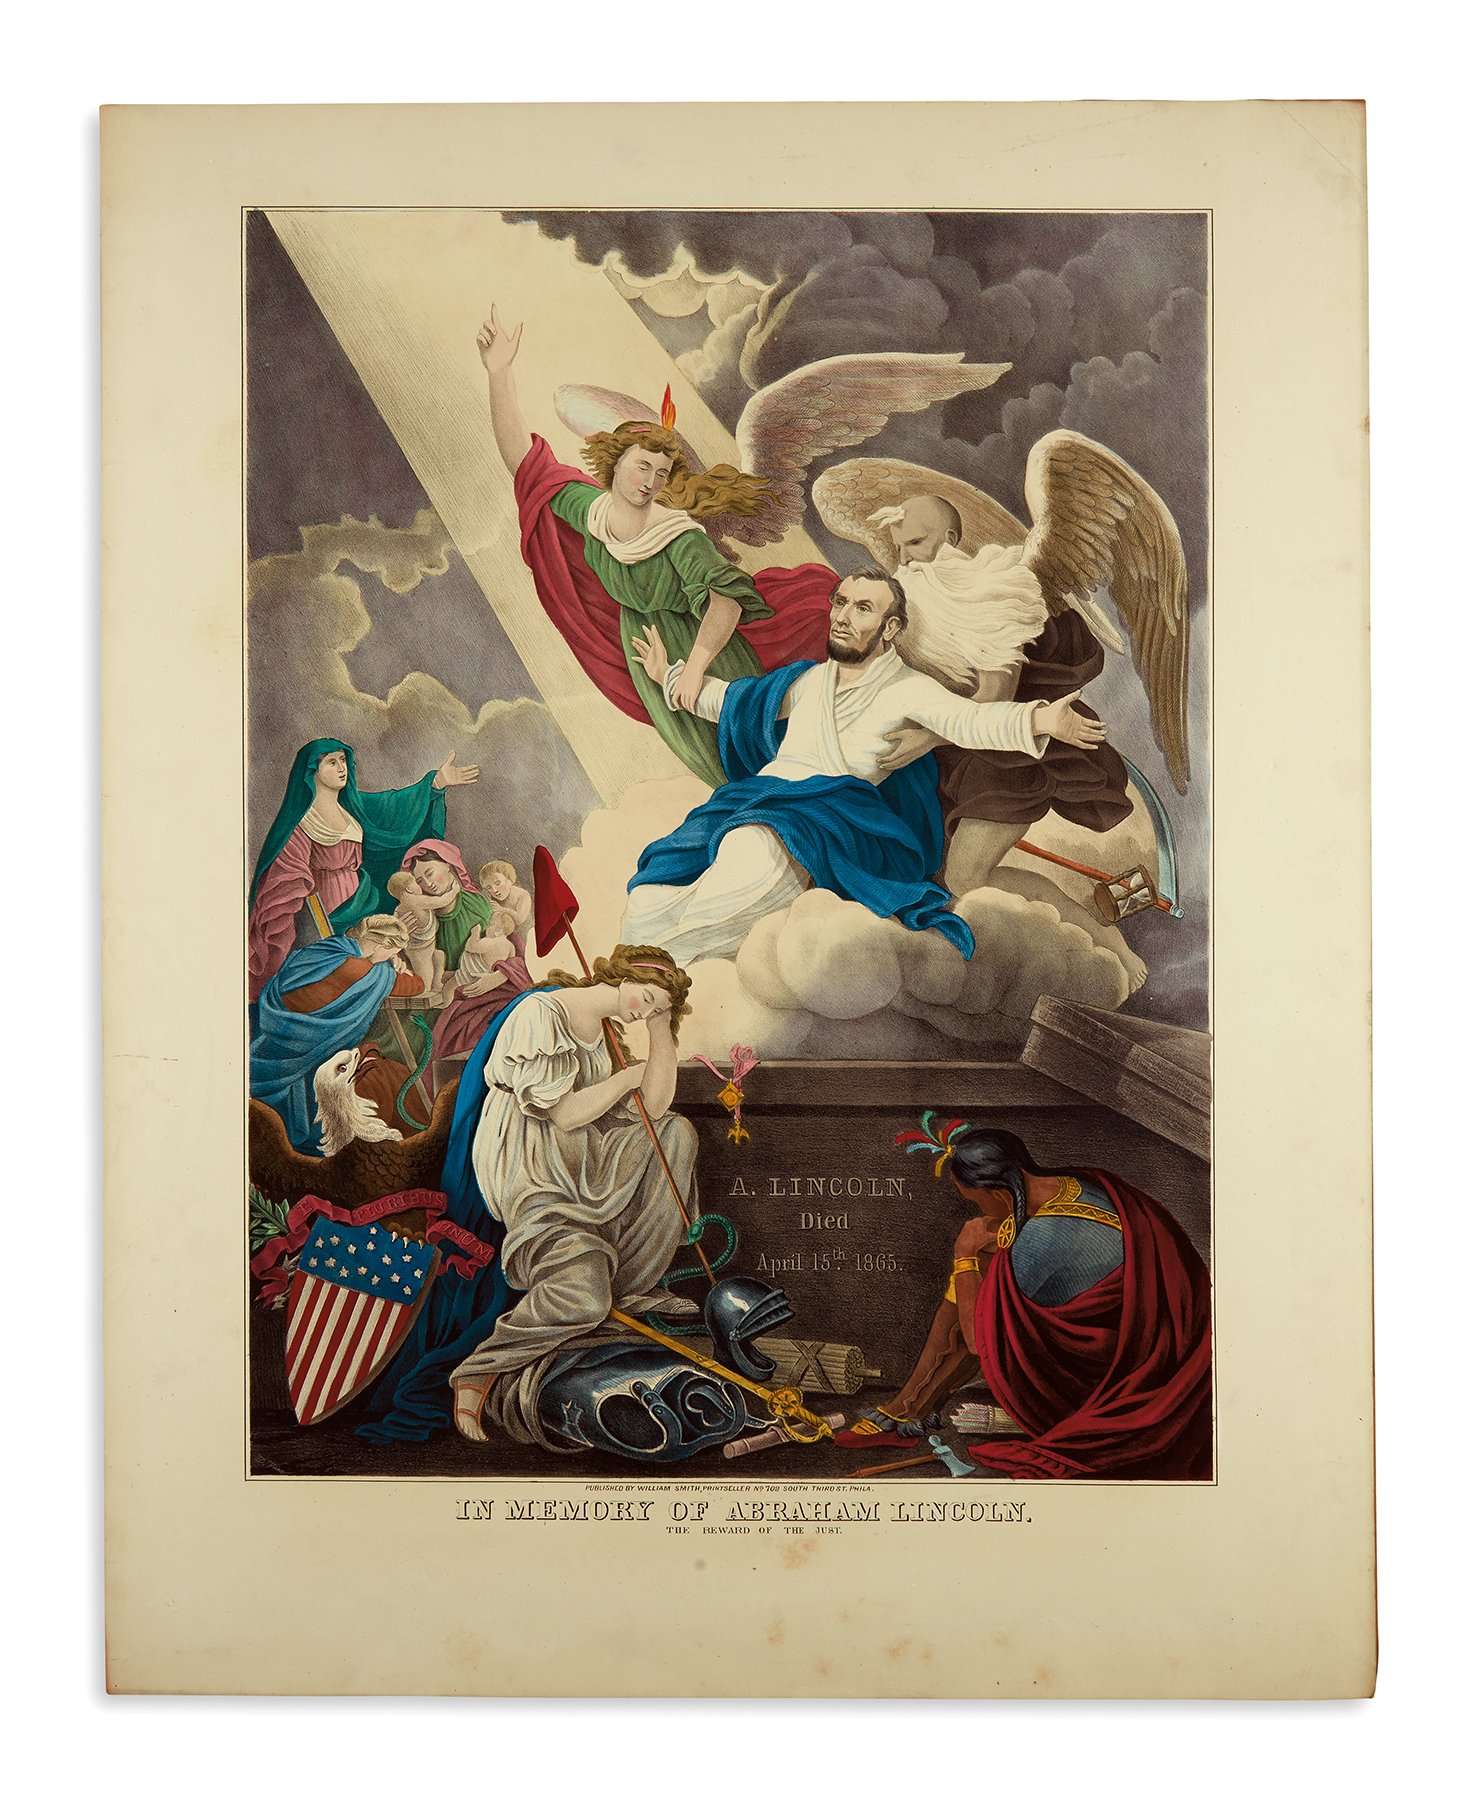 In Memory of Abraham Lincoln, the Reward of the Just, a hand-colored lithograph by D.T. Wiest, printed circa 1865.